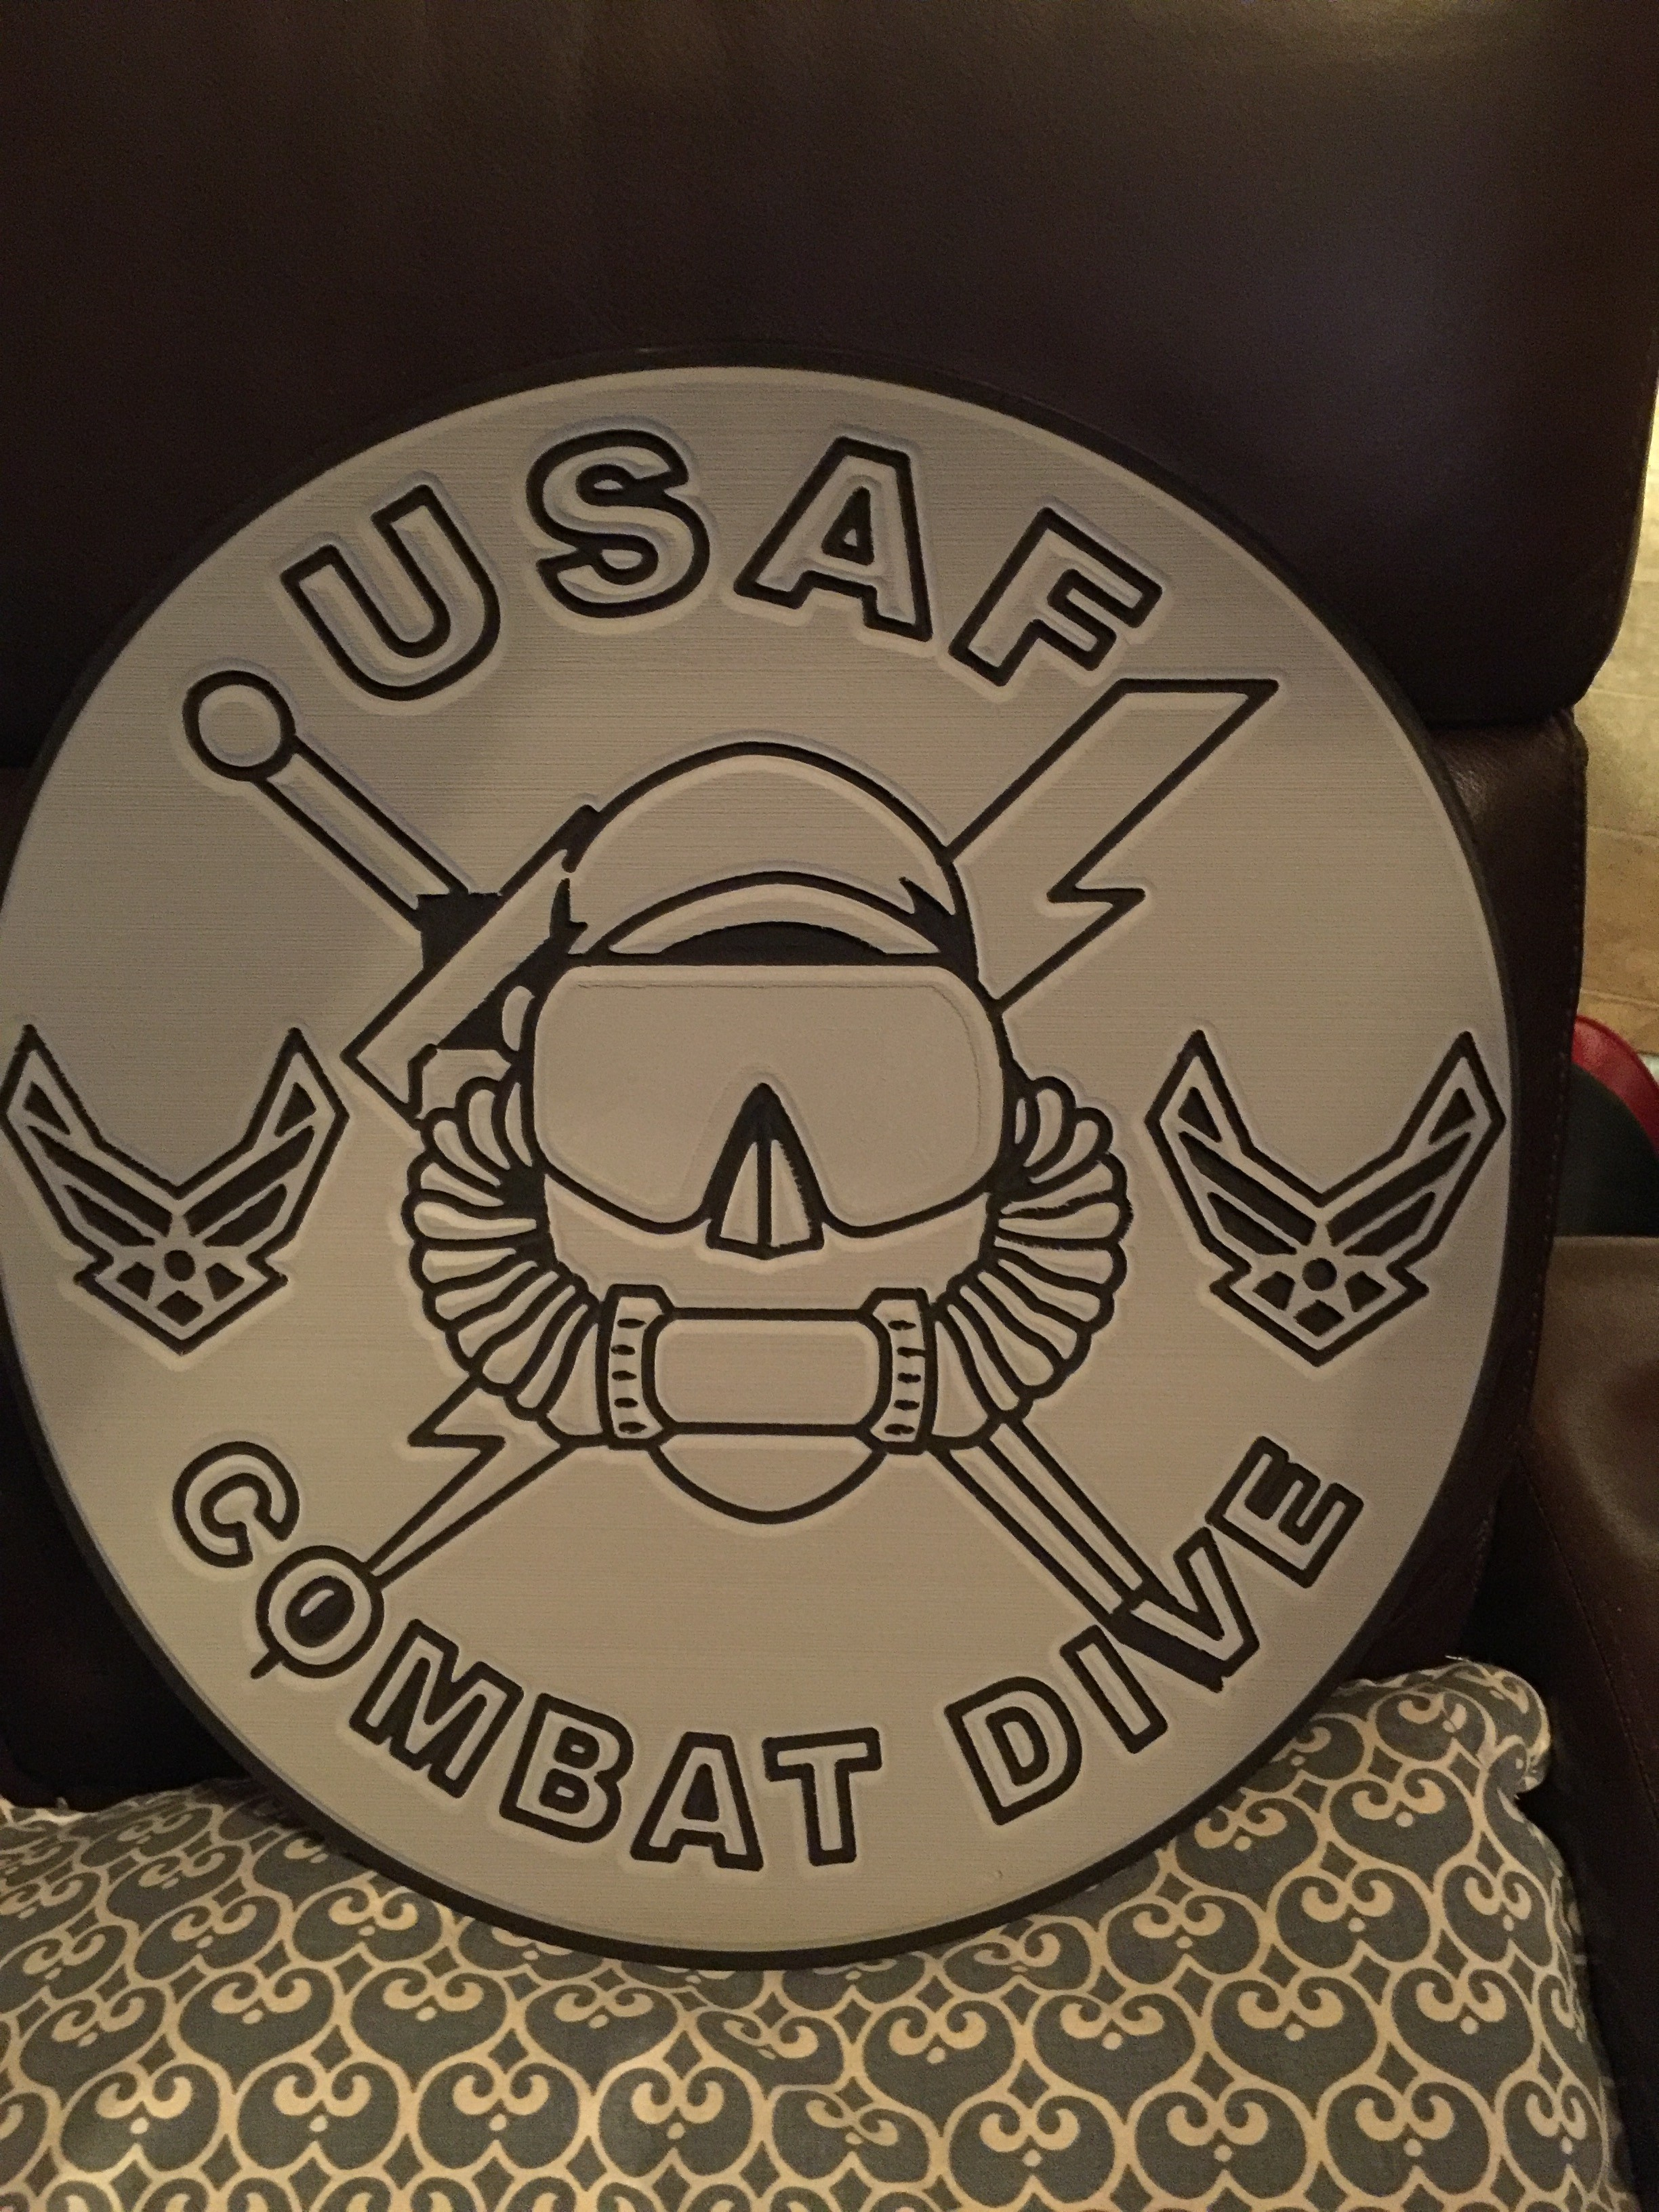 United States Air Force Combat Dive